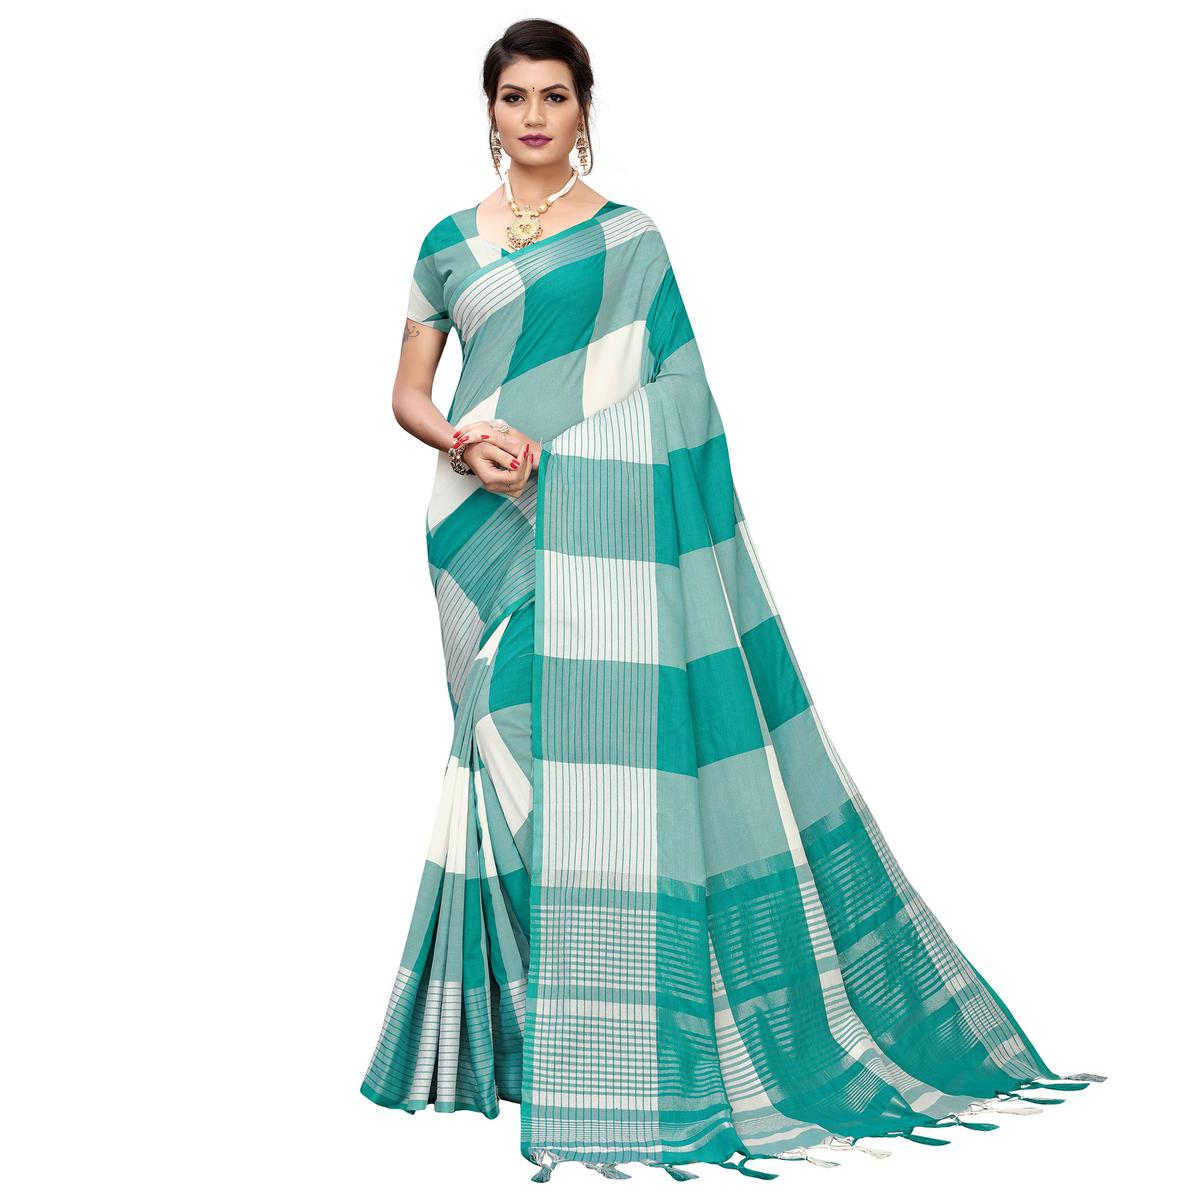 Innovative Turquoise Green-White Colored Festive Wear Printed Cotton Silk Saree